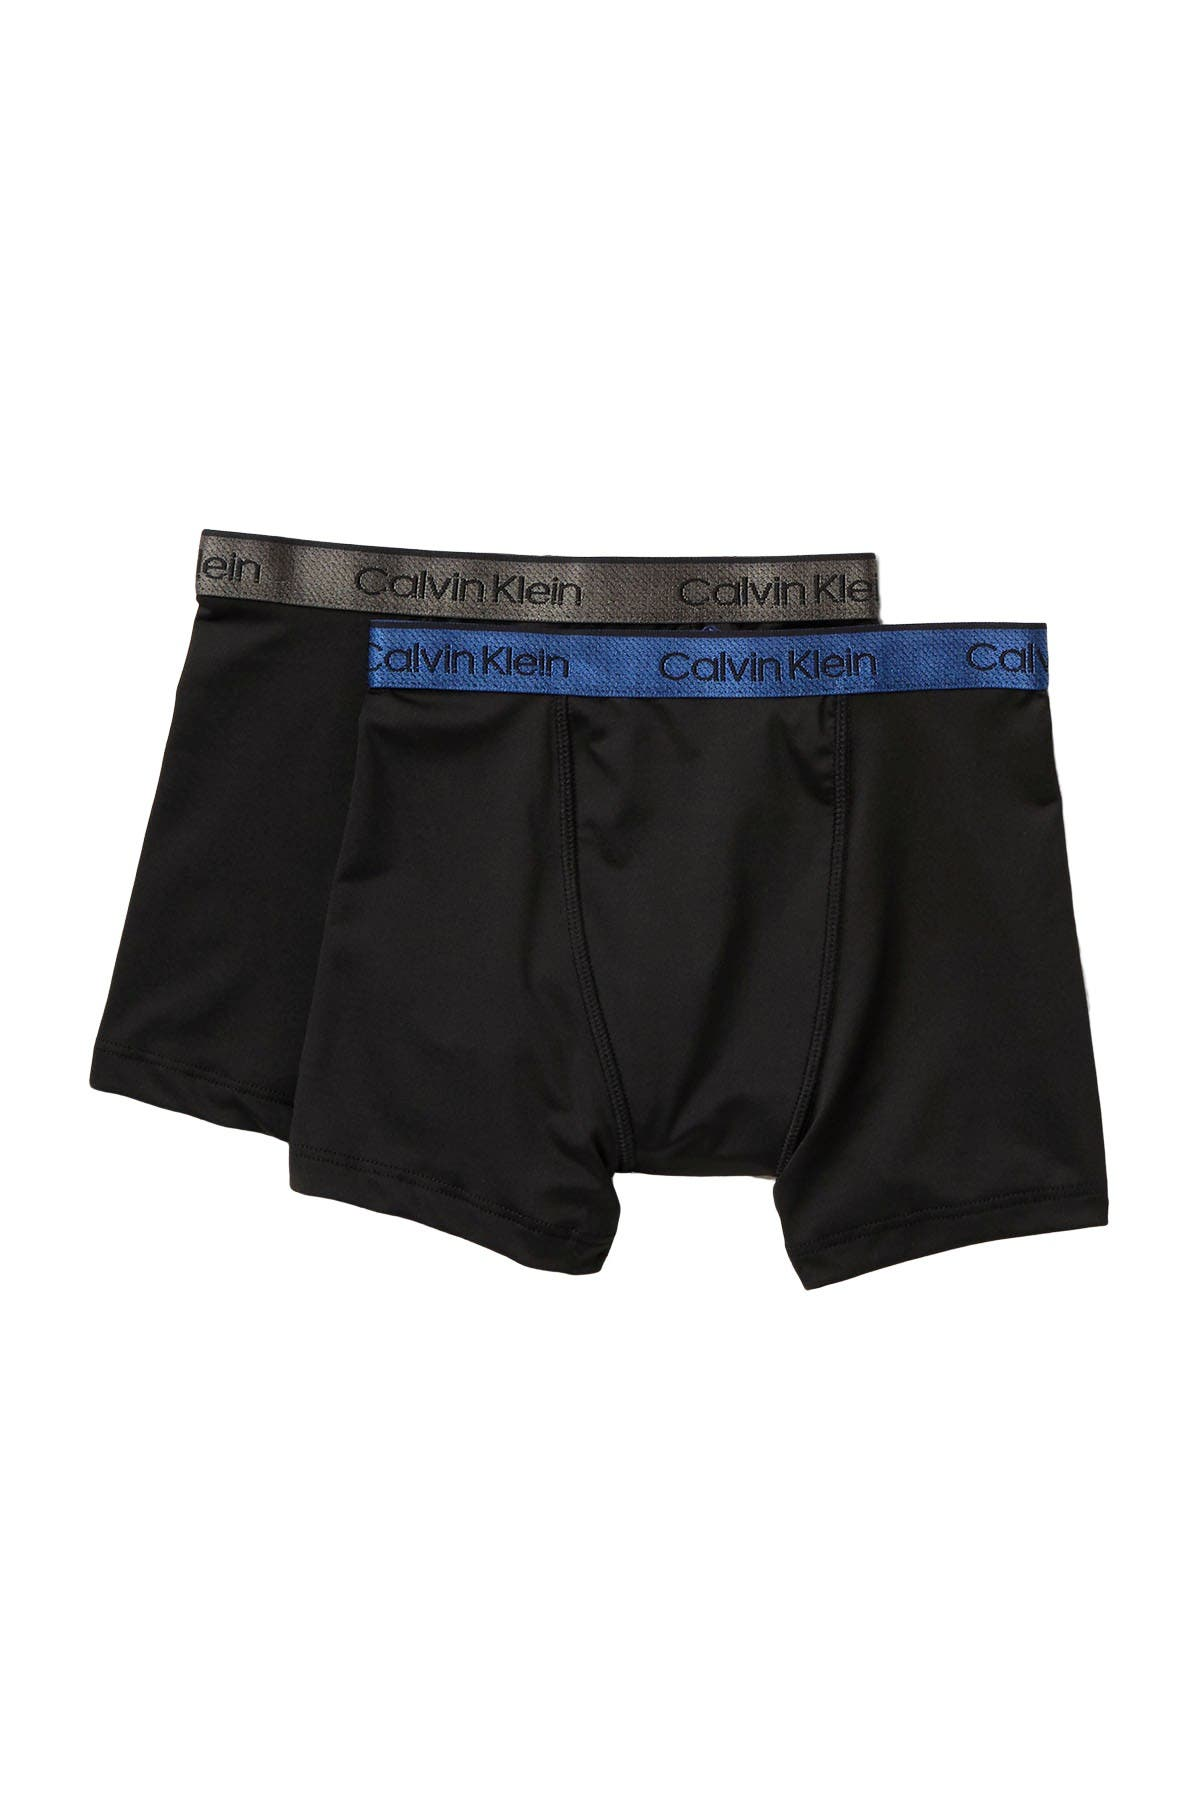 Image of Calvin Klein Performance Boxer Briefs - Pack of 2